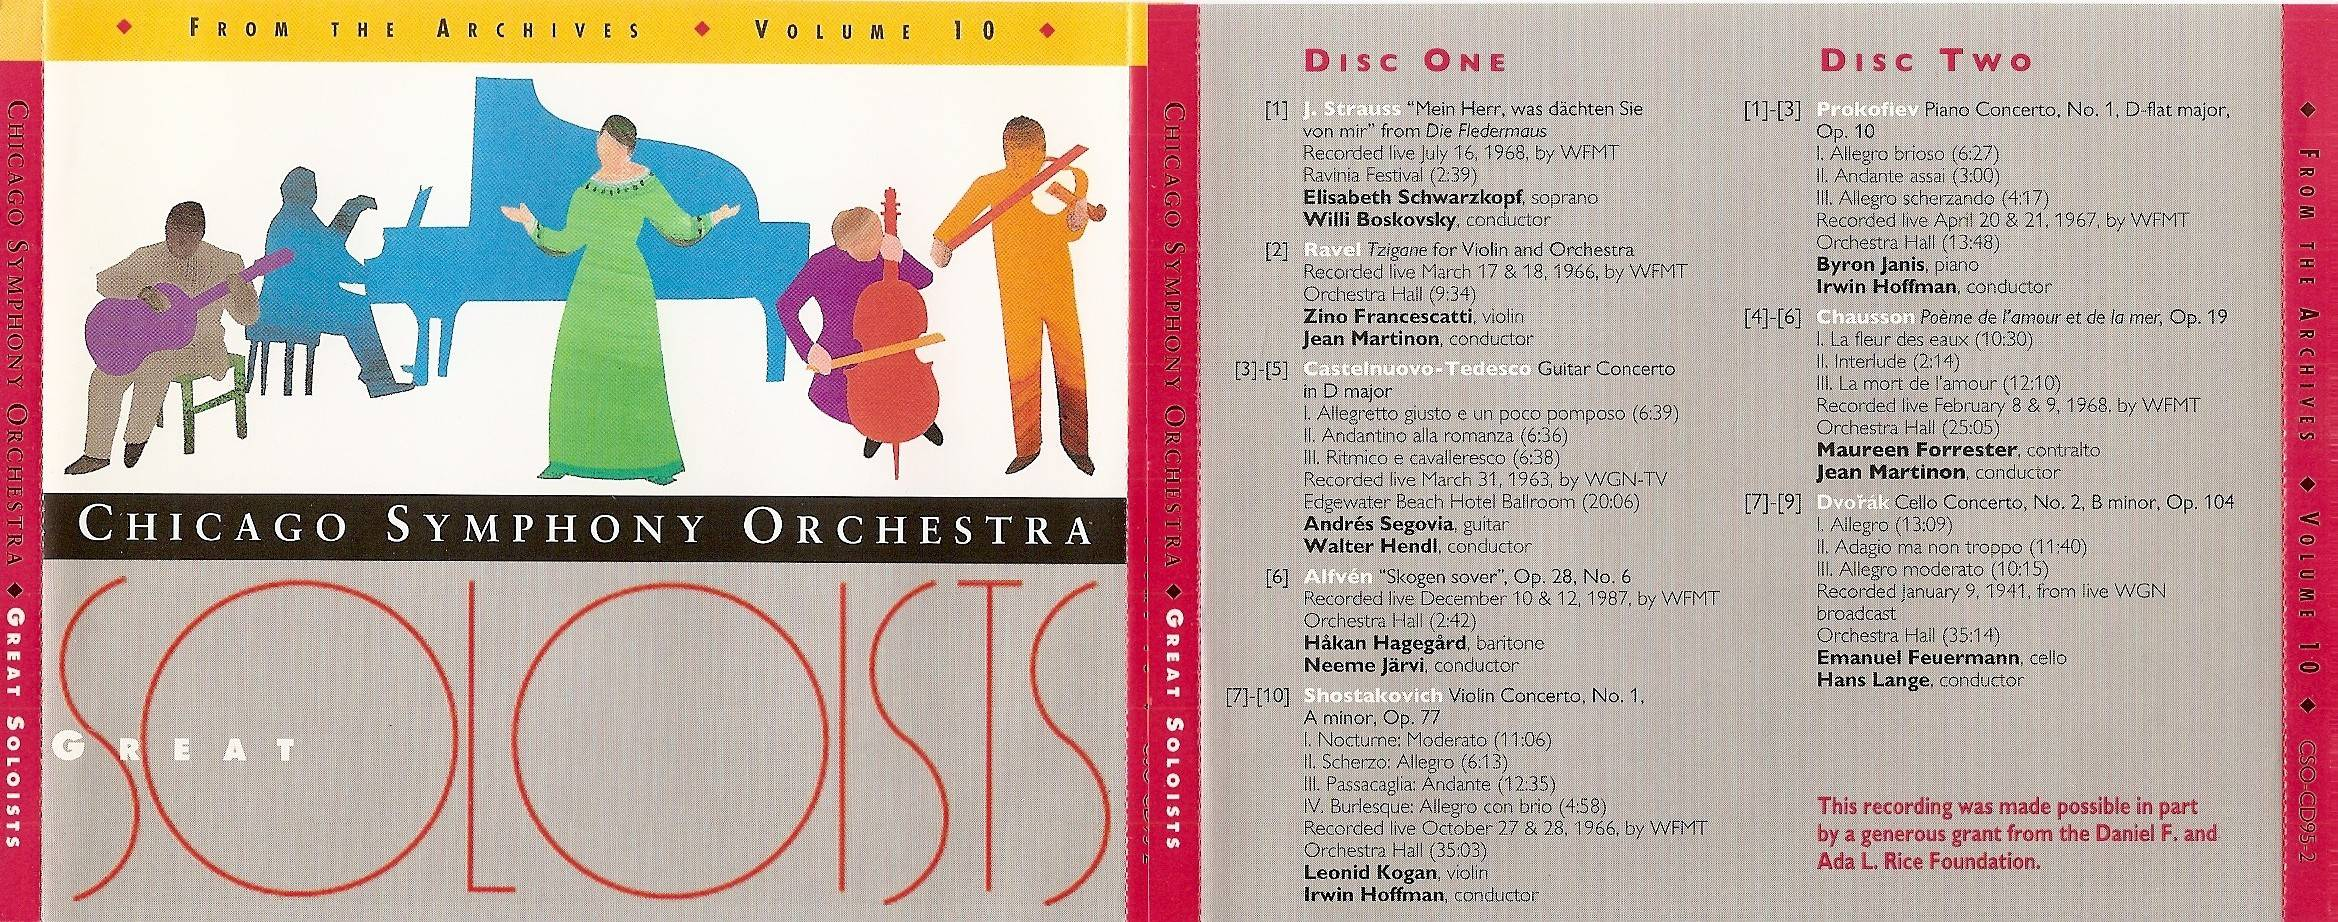 Chicago Symphony Orchestra - From The Archives, Vol.10: Great Soloists, 2-CD set (1995)